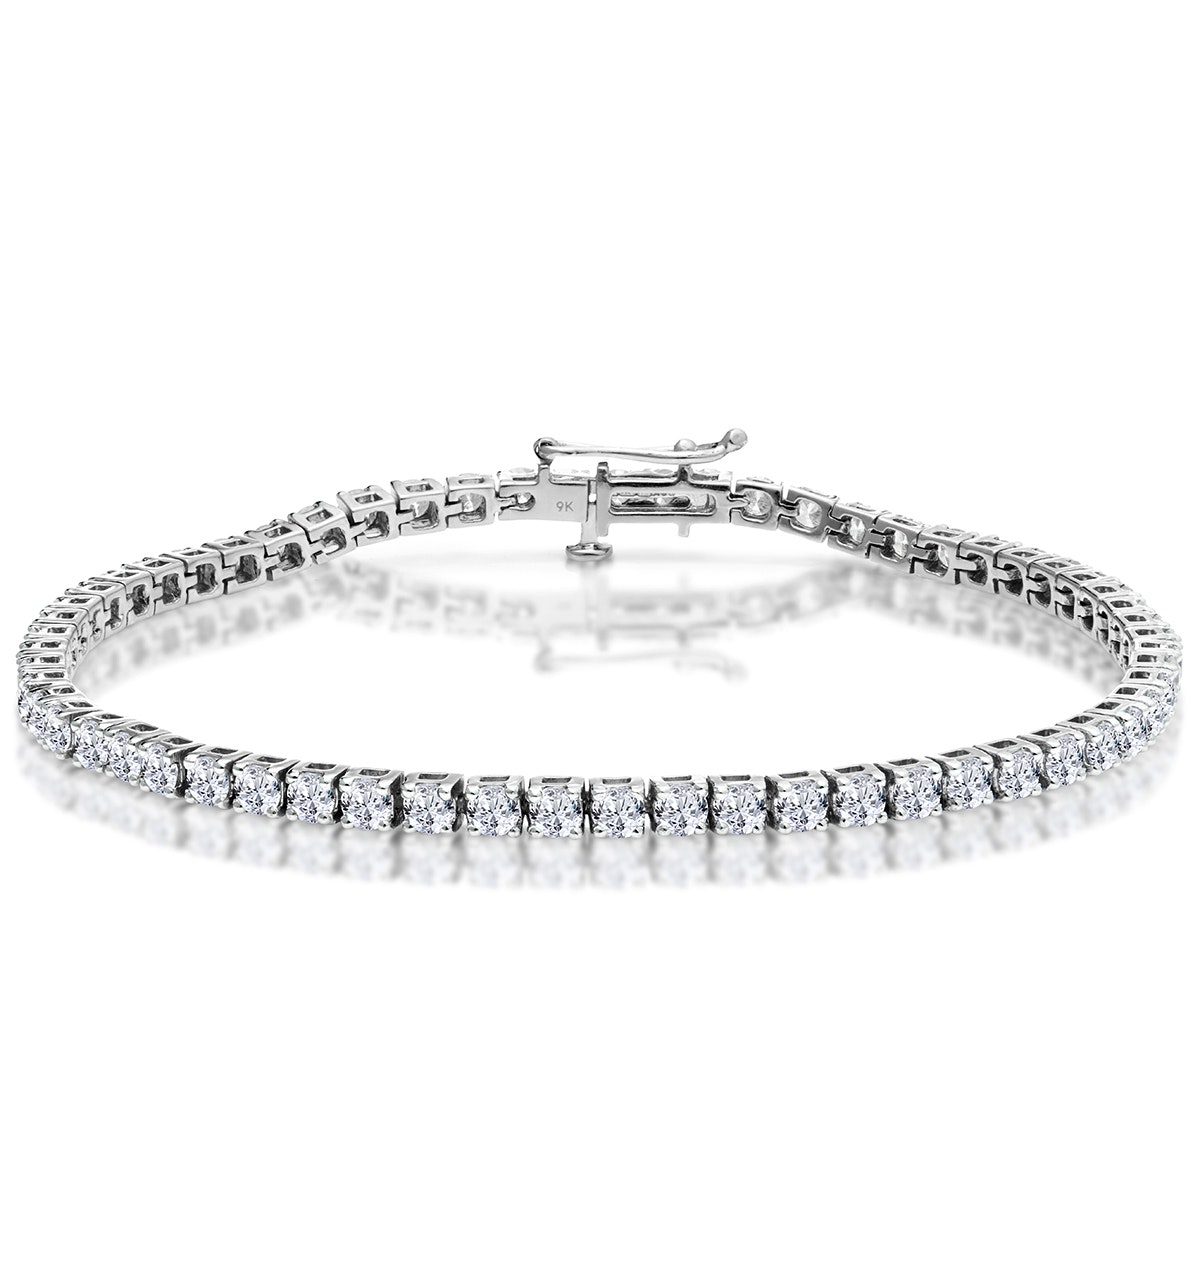 5ct Diamond Tennis Bracelet Claw Set in 9K White Gold